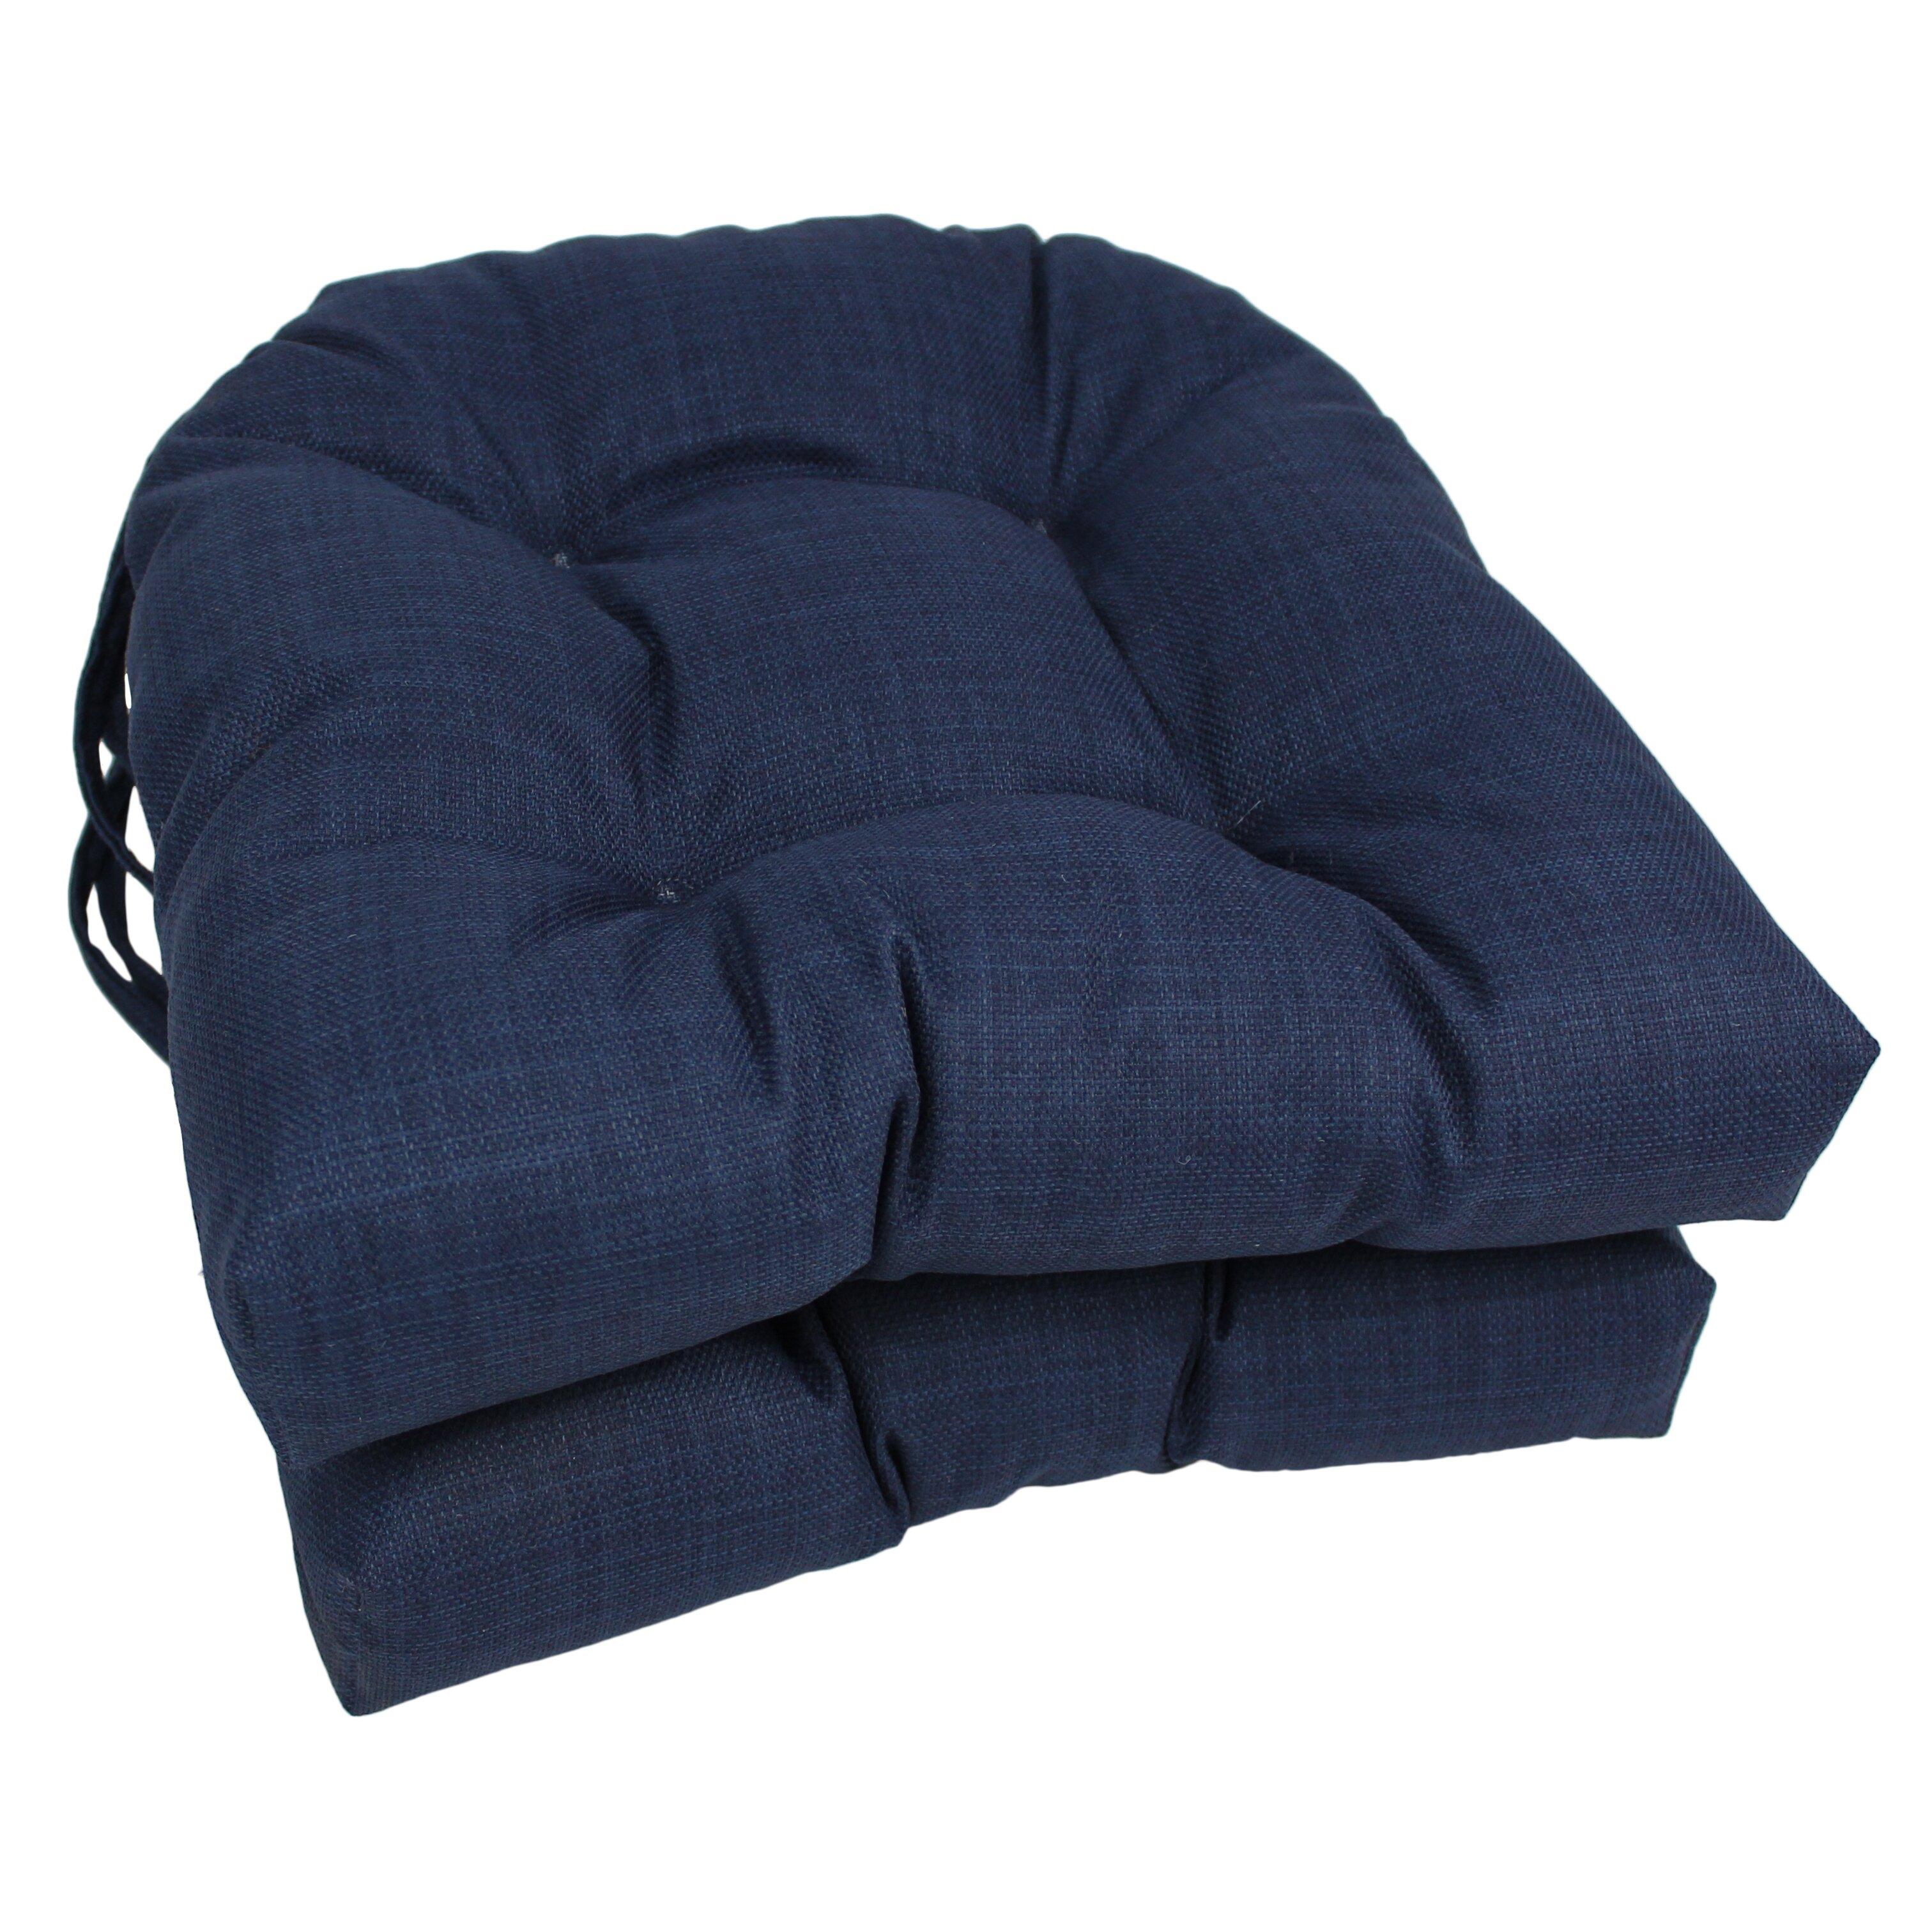 Blazing Needles Outdoor Lounge Chair Cushion & Reviews